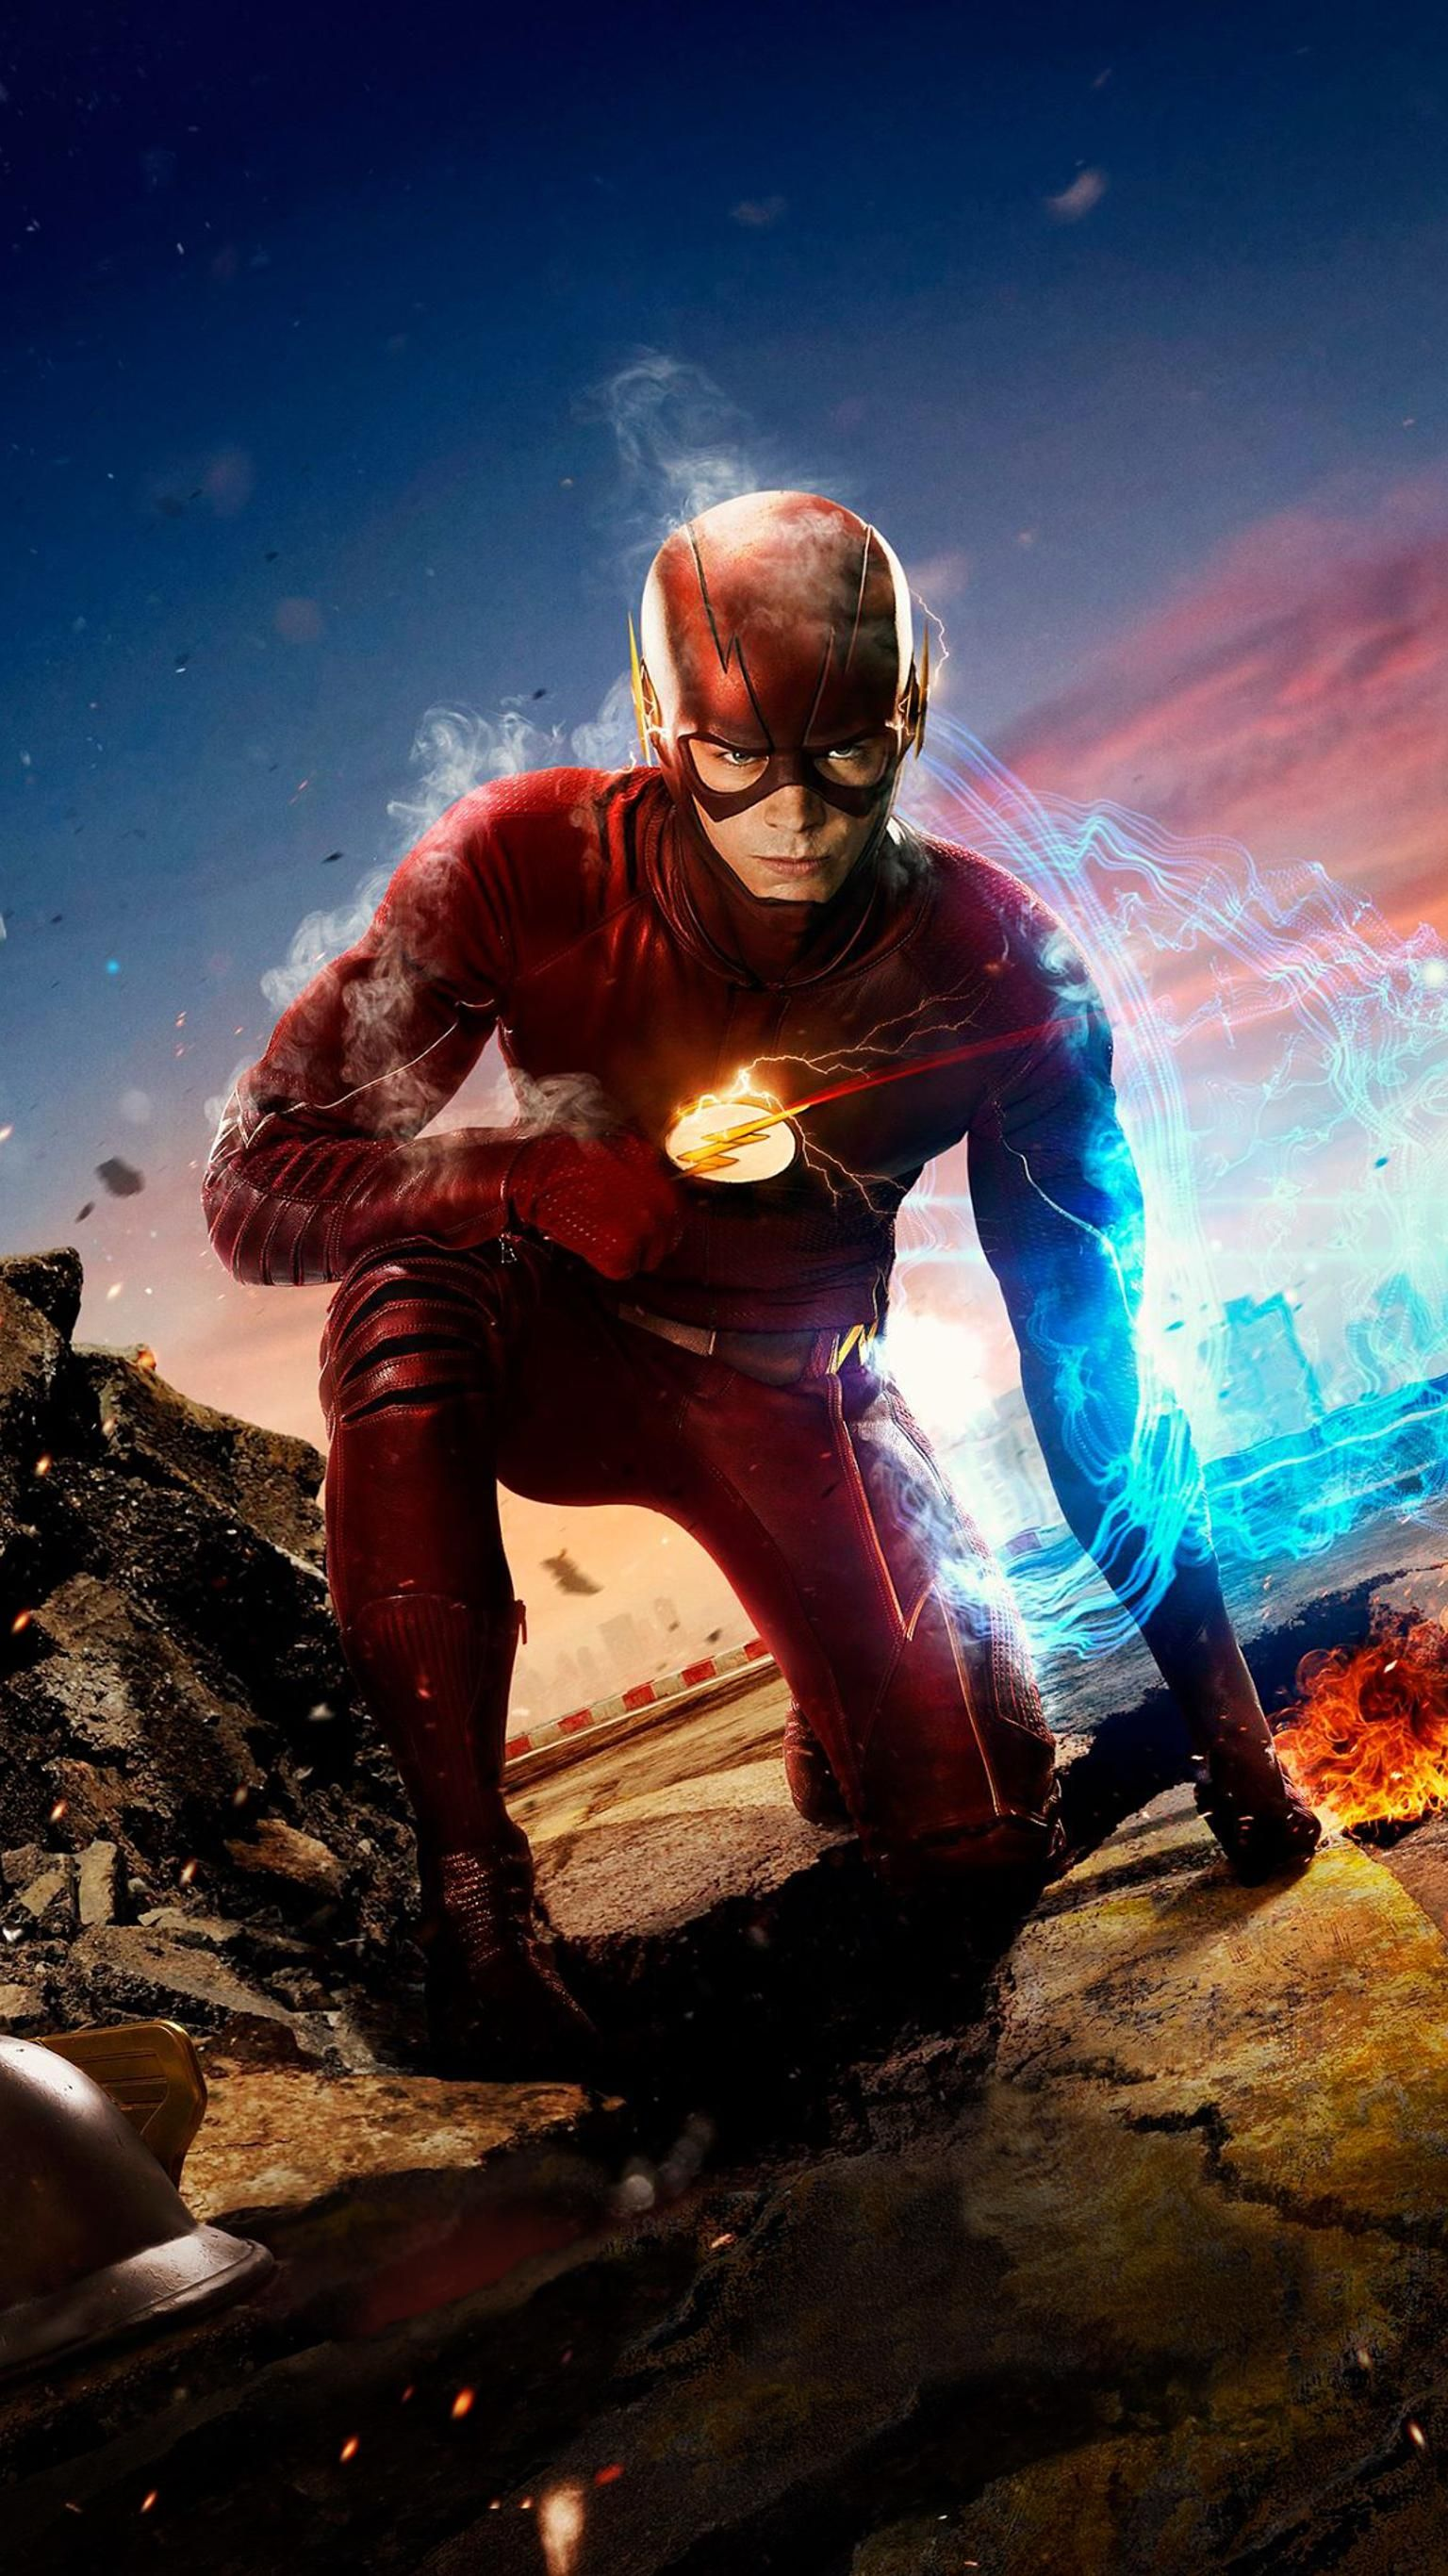 The Flash Phone Wallpaper Moviemania in 2020 The flash